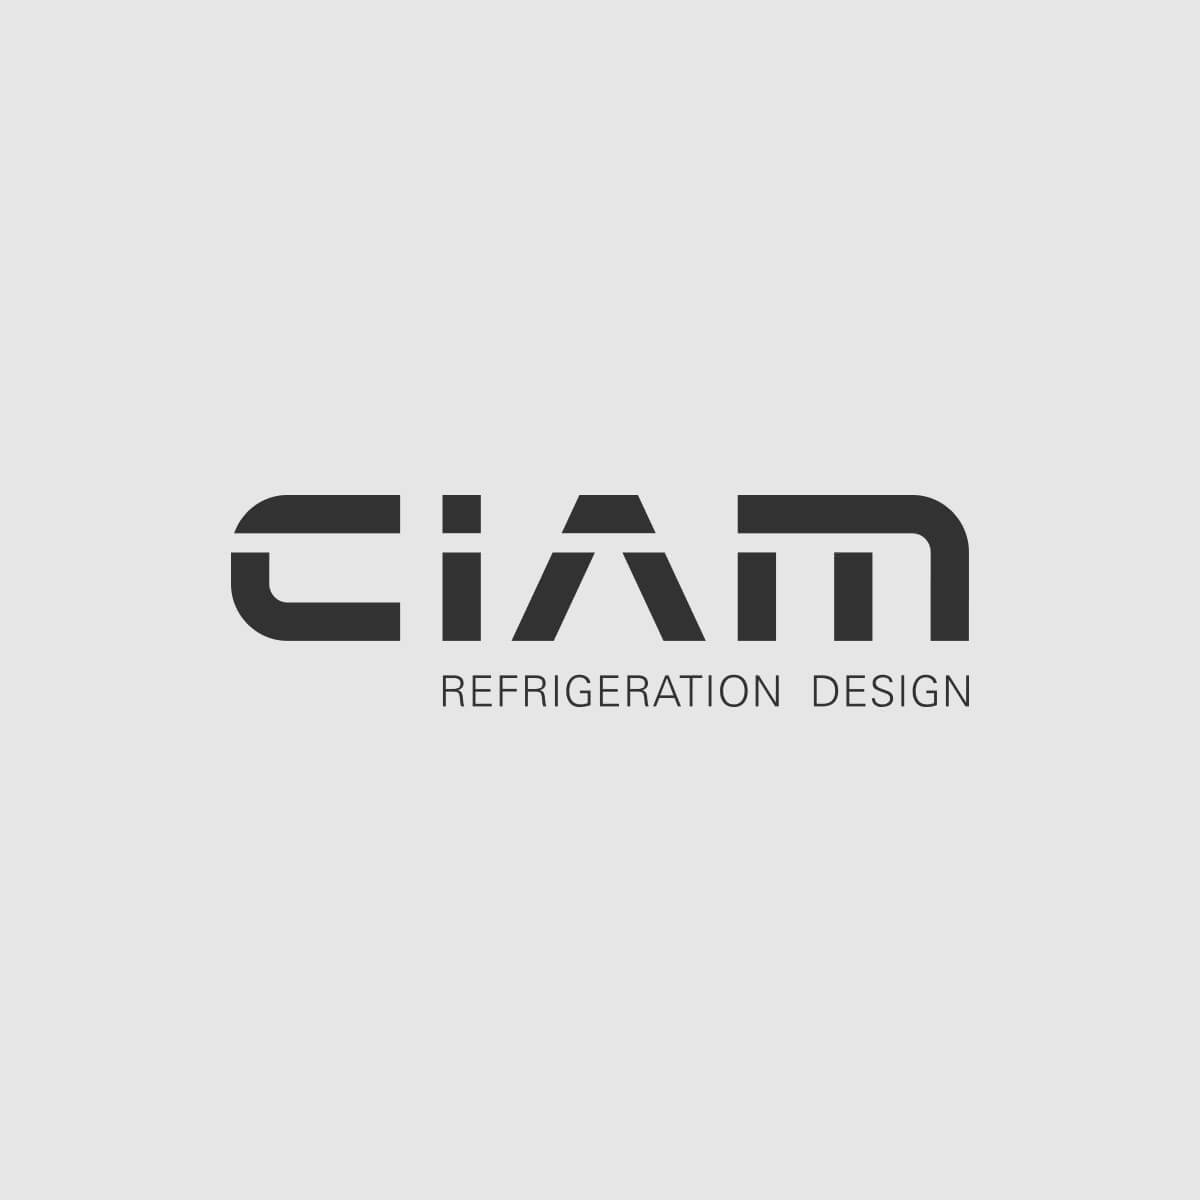 Ciam - refrigeration design